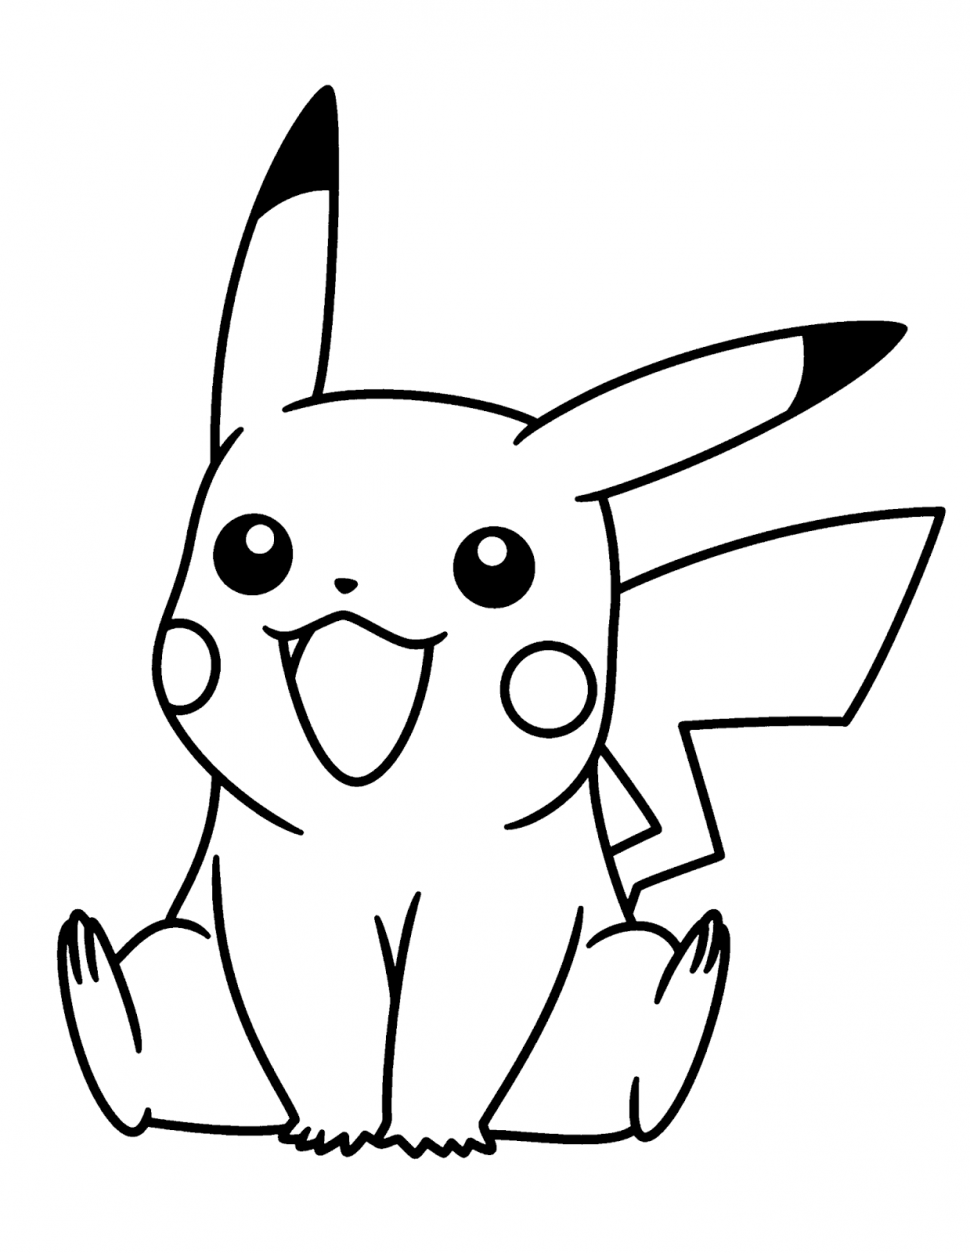 Eloquent image with regard to printable pikachu